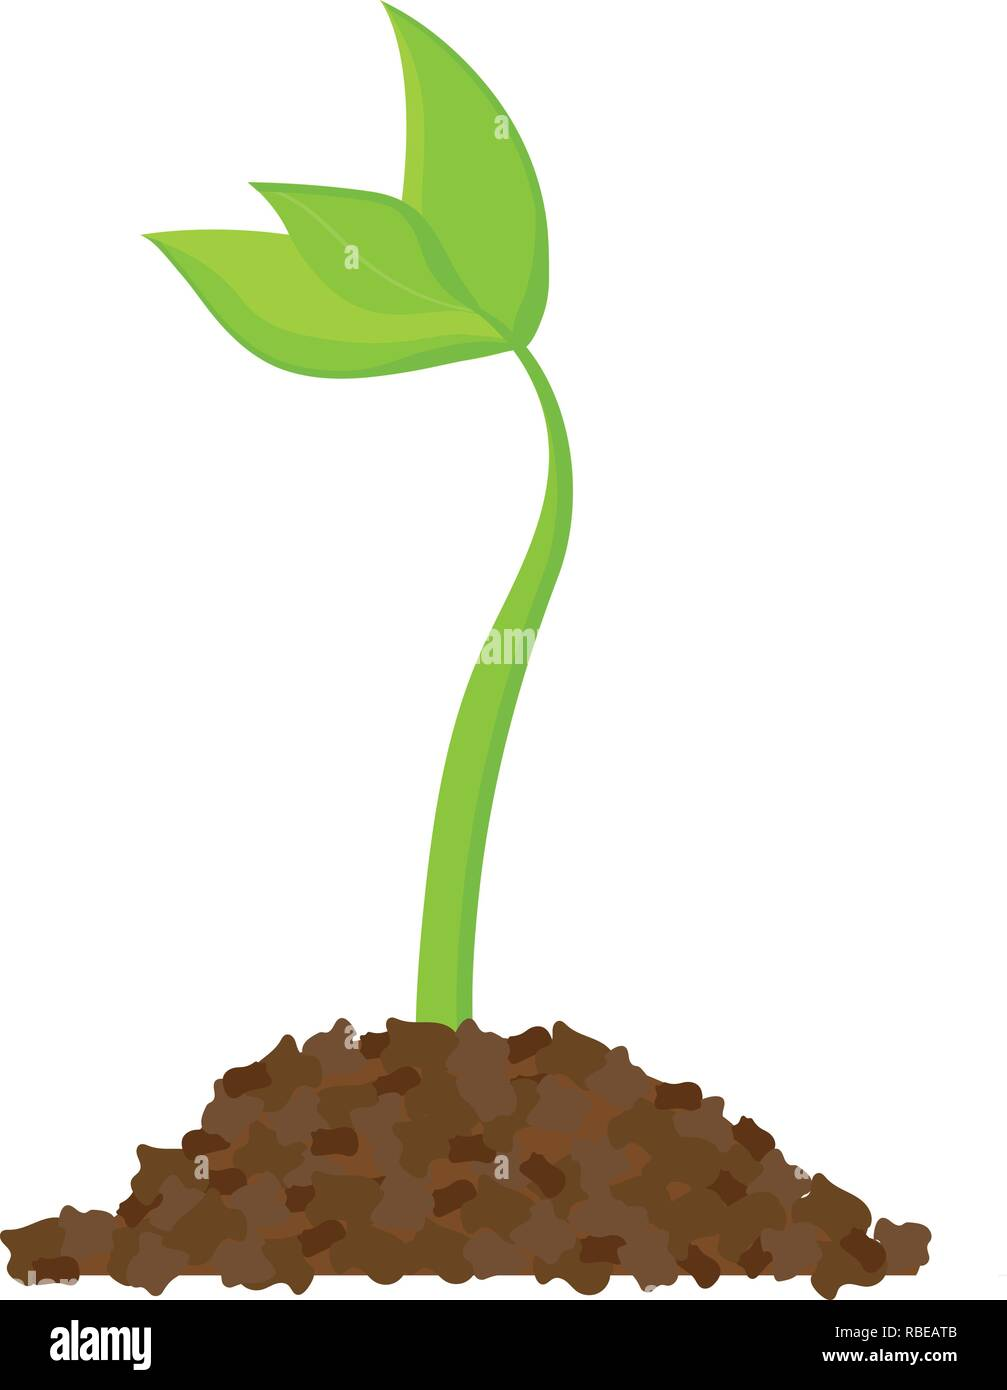 Simple sprouting seed drawing. Sprout, plant, tree growing agriculture icons. Vector illustration - Stock Vector